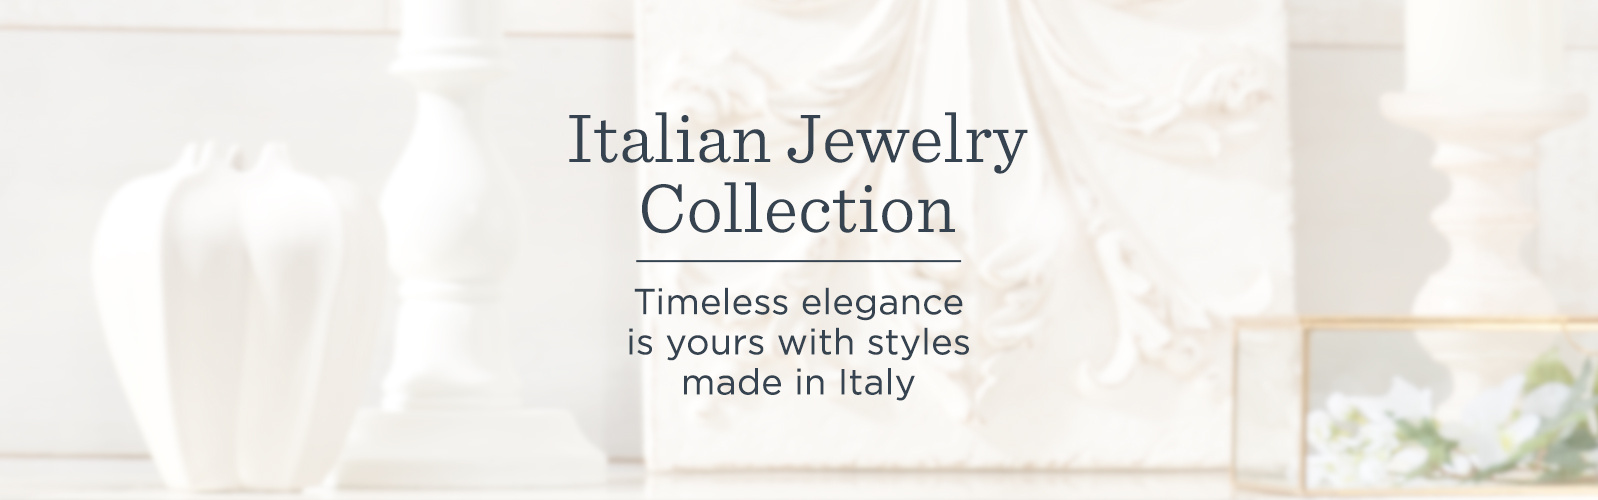 Italian Jewelry Collection. Timeless elegance is yours with styles made in Italy